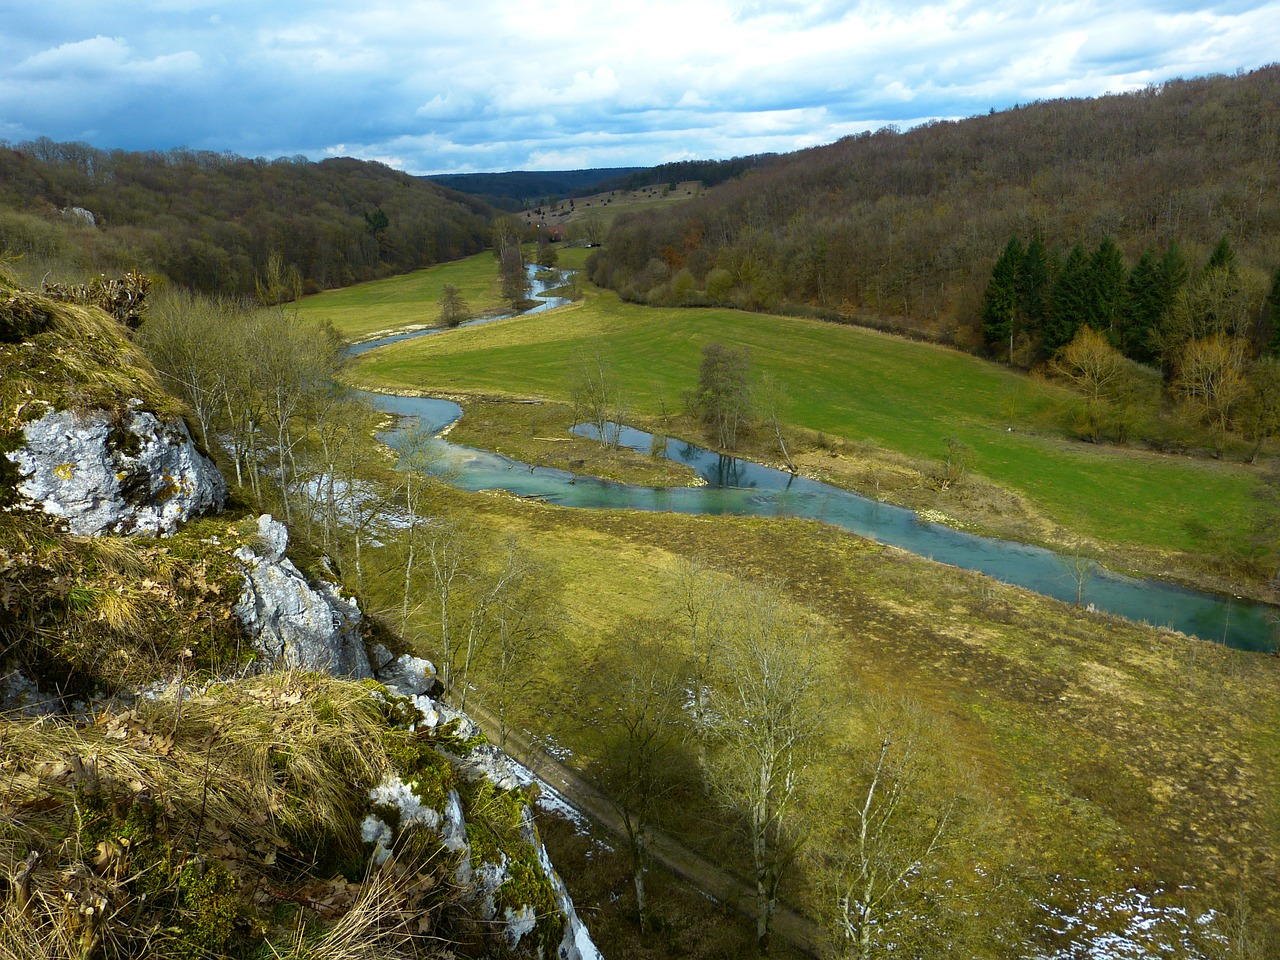 eselsburg valley brenz river free photo